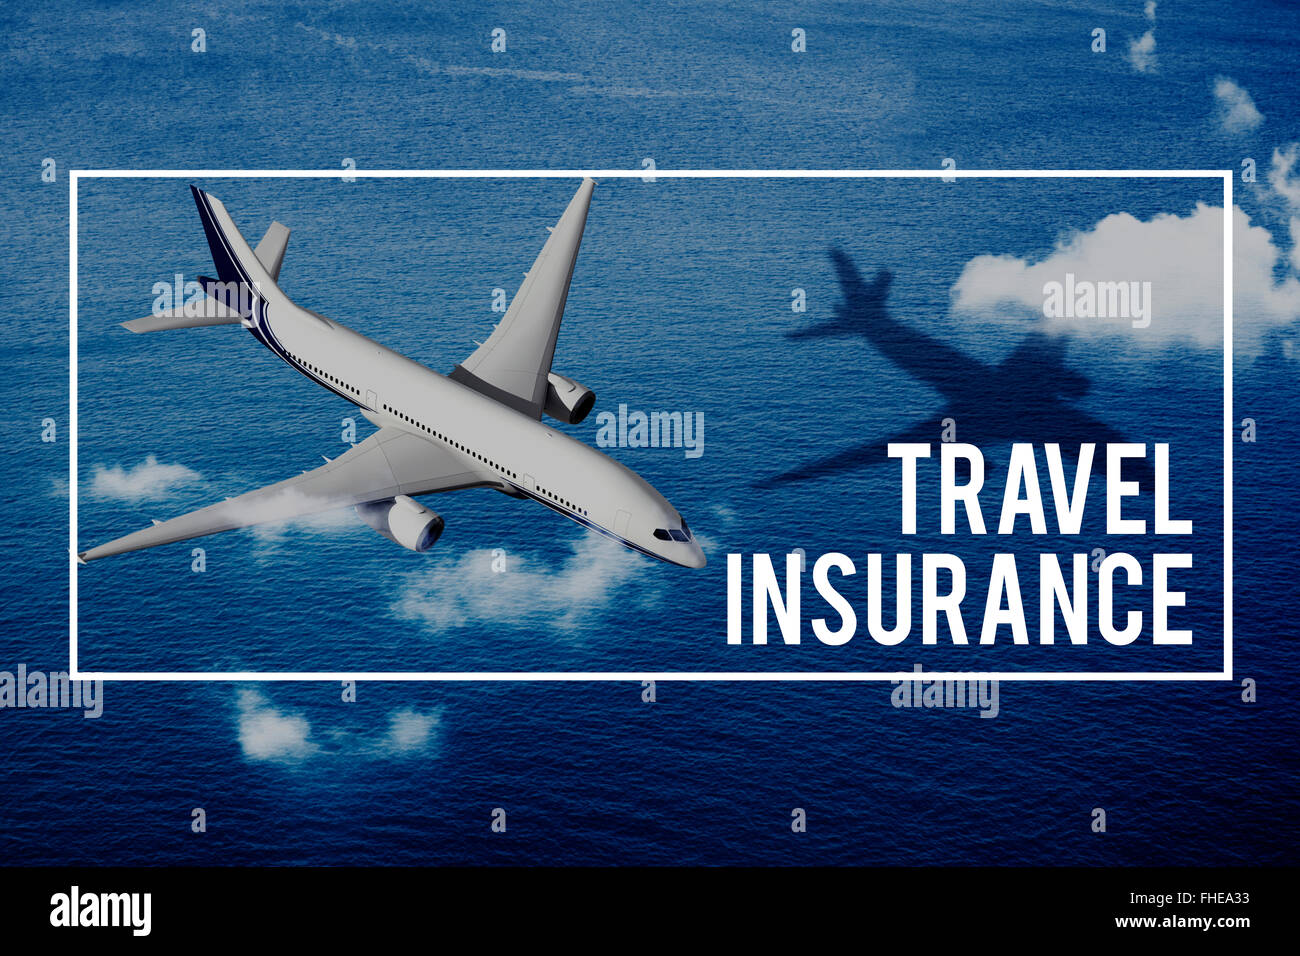 Travel Insurance Protection Vacation Security Tour Concept - Stock Image